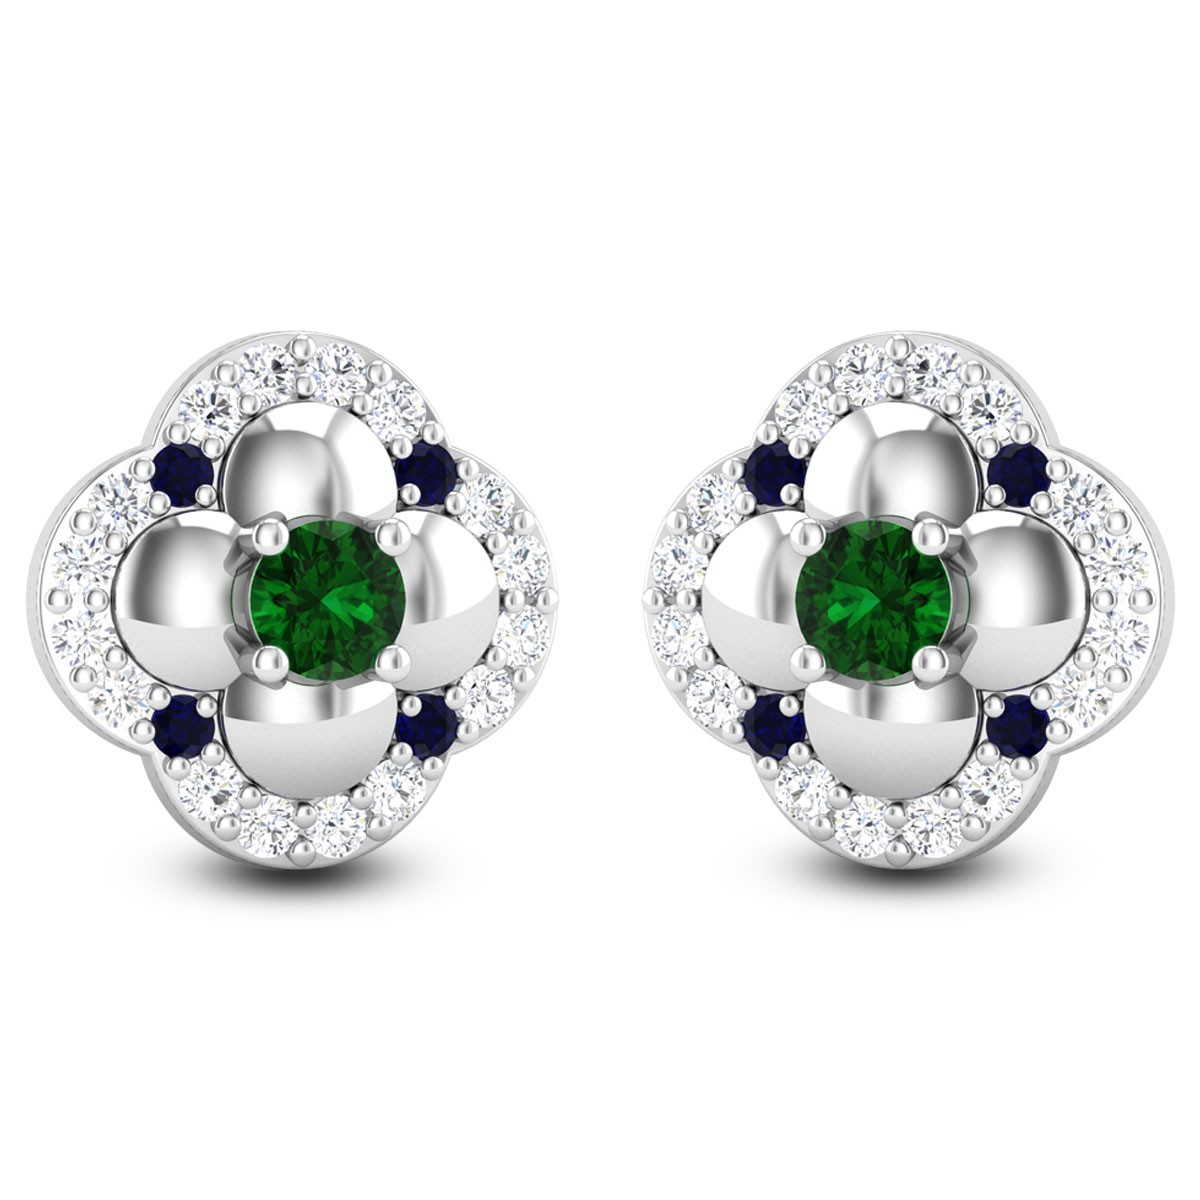 Talea Floral Diamond Stud Earrings